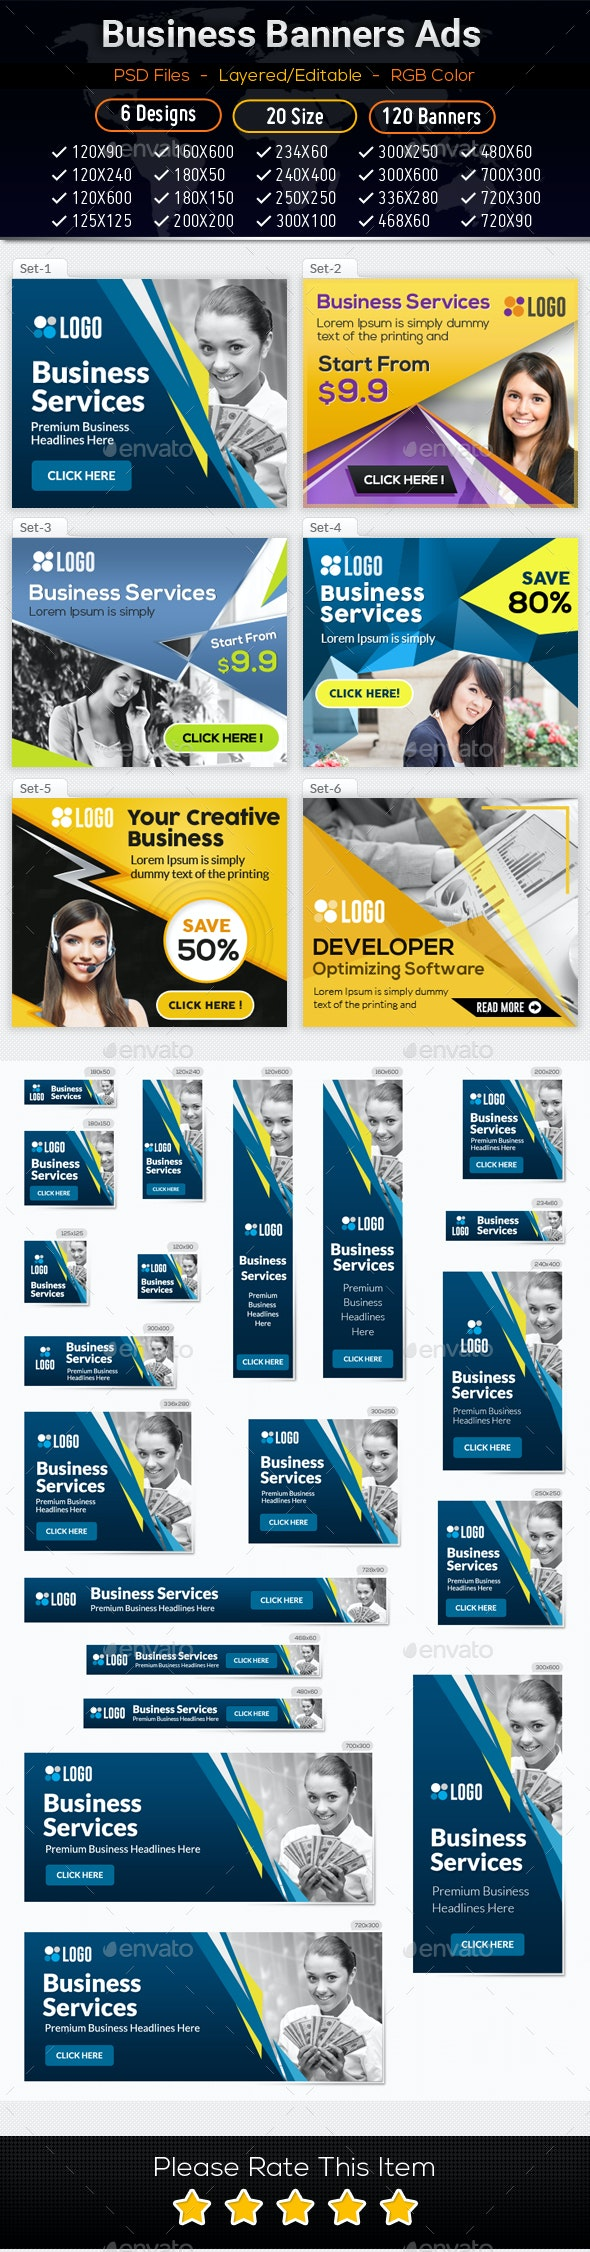 Business Banners Ads 01 - Banners & Ads Web Elements